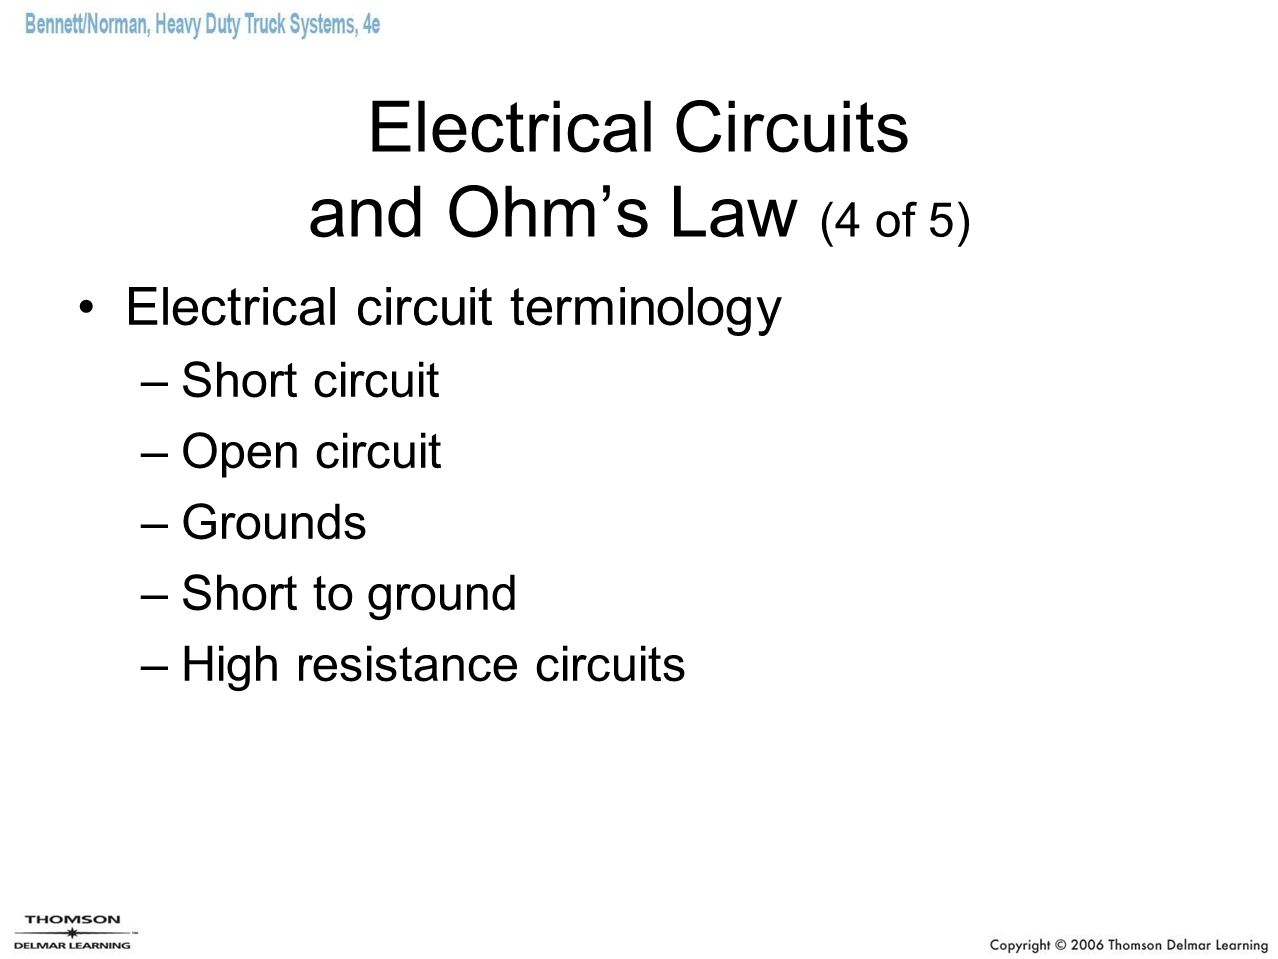 Electrical Circuits and Ohm's Law (4 of 5)